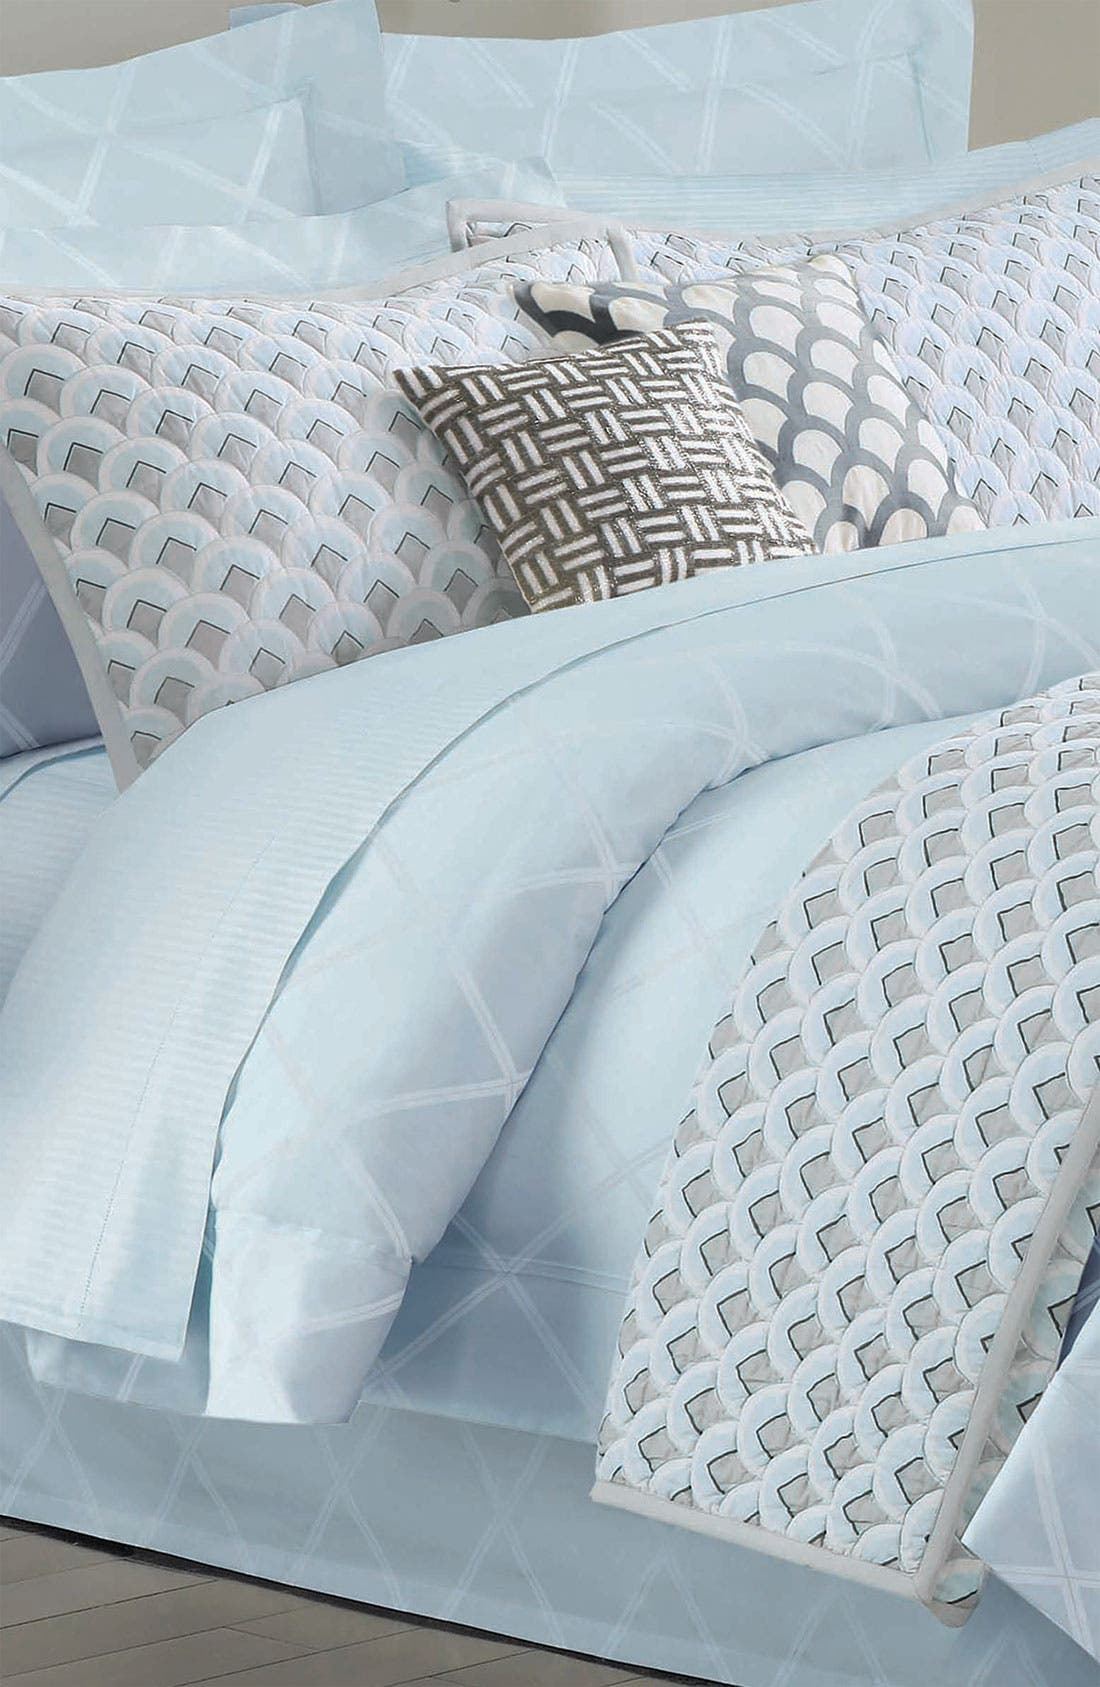 Main Image - kate spade new york 'magnolia park' 300 thread count duvet cover